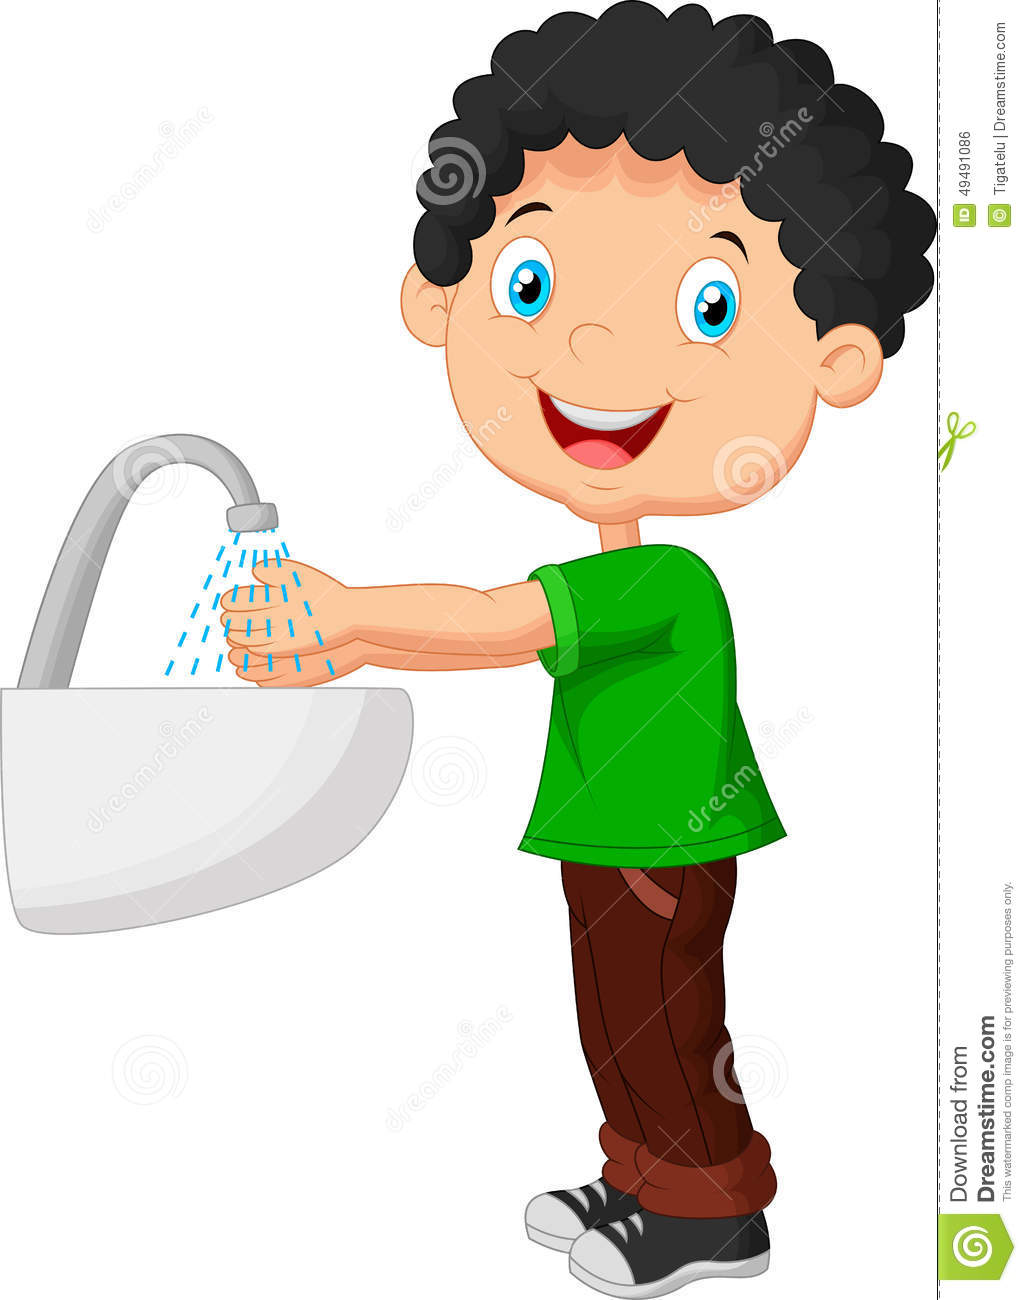 Cute Cartoon Boy Washing His Hands Stock Vector - Image: 49491086